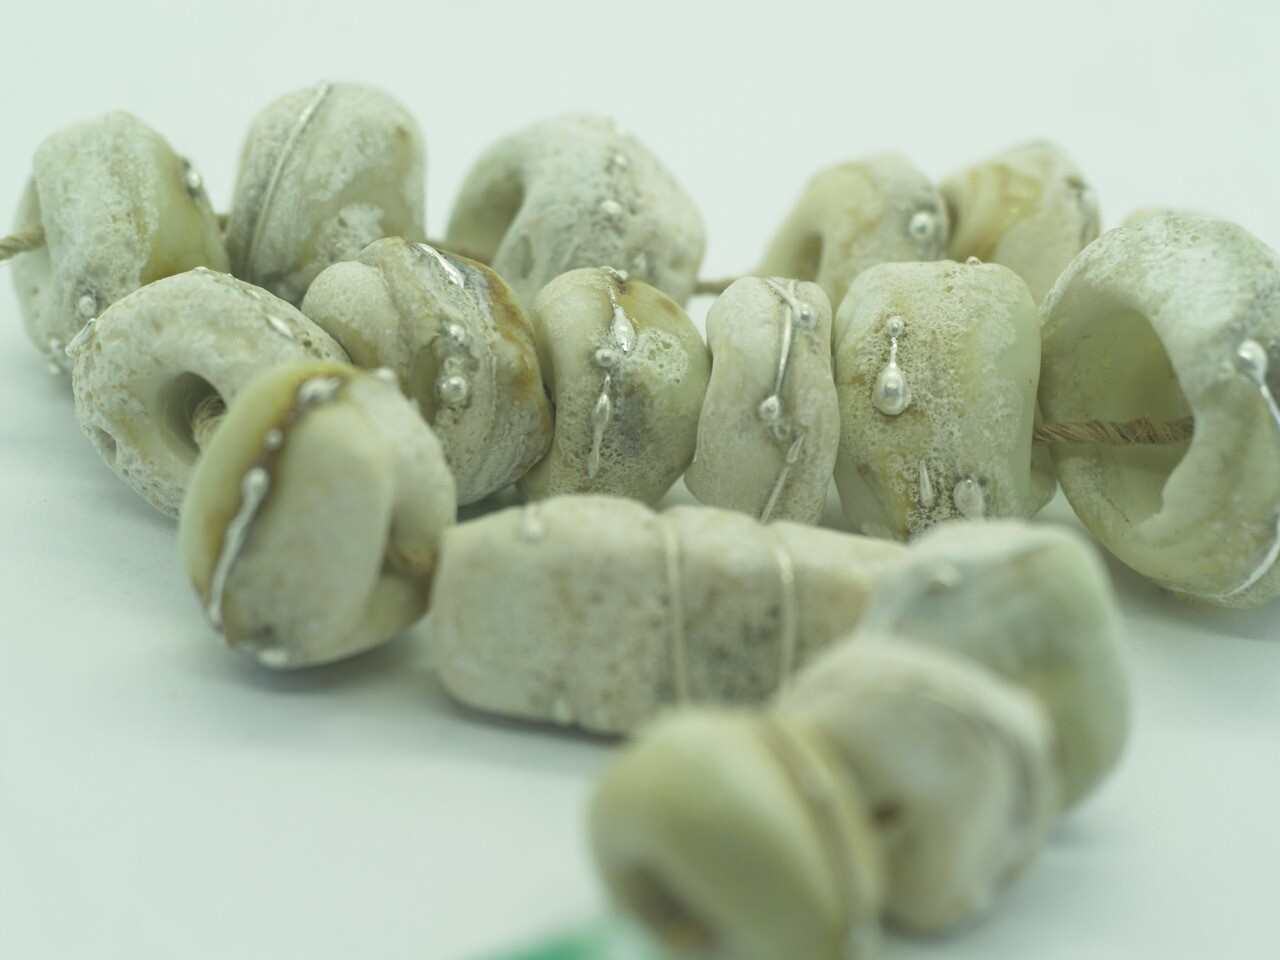 emubeads seawash ivory with silver design for jewellery making